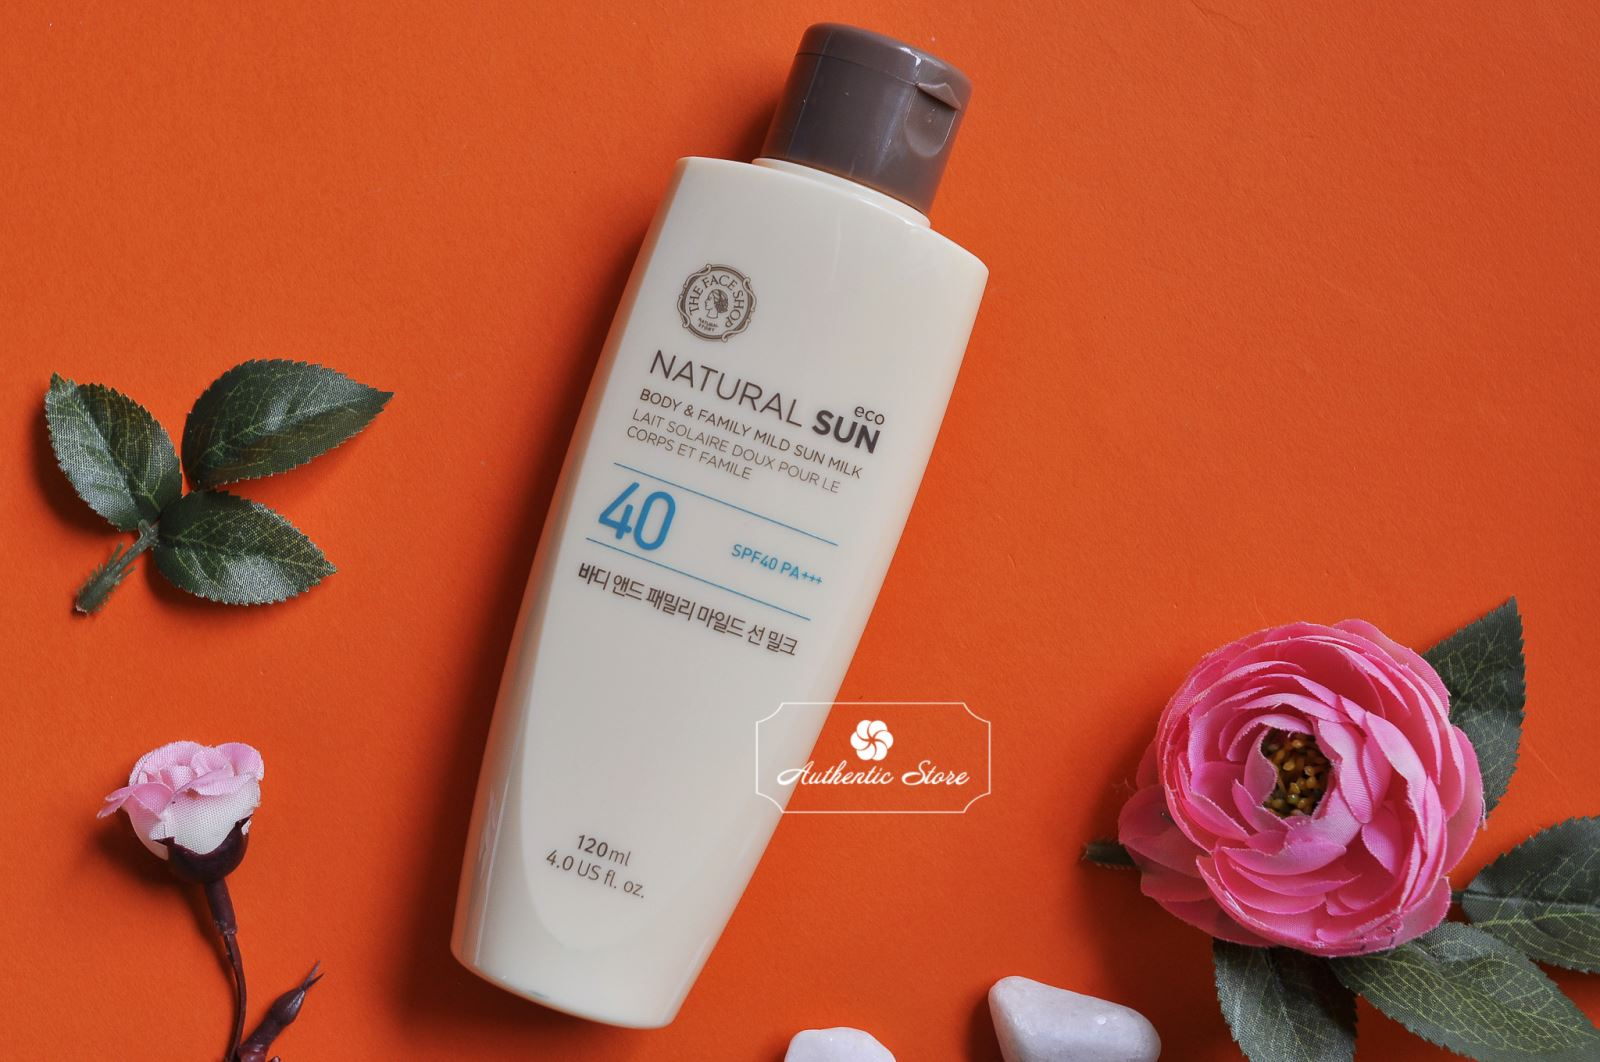 The Face Shop Natural Sun Body Sun Milk SPF40